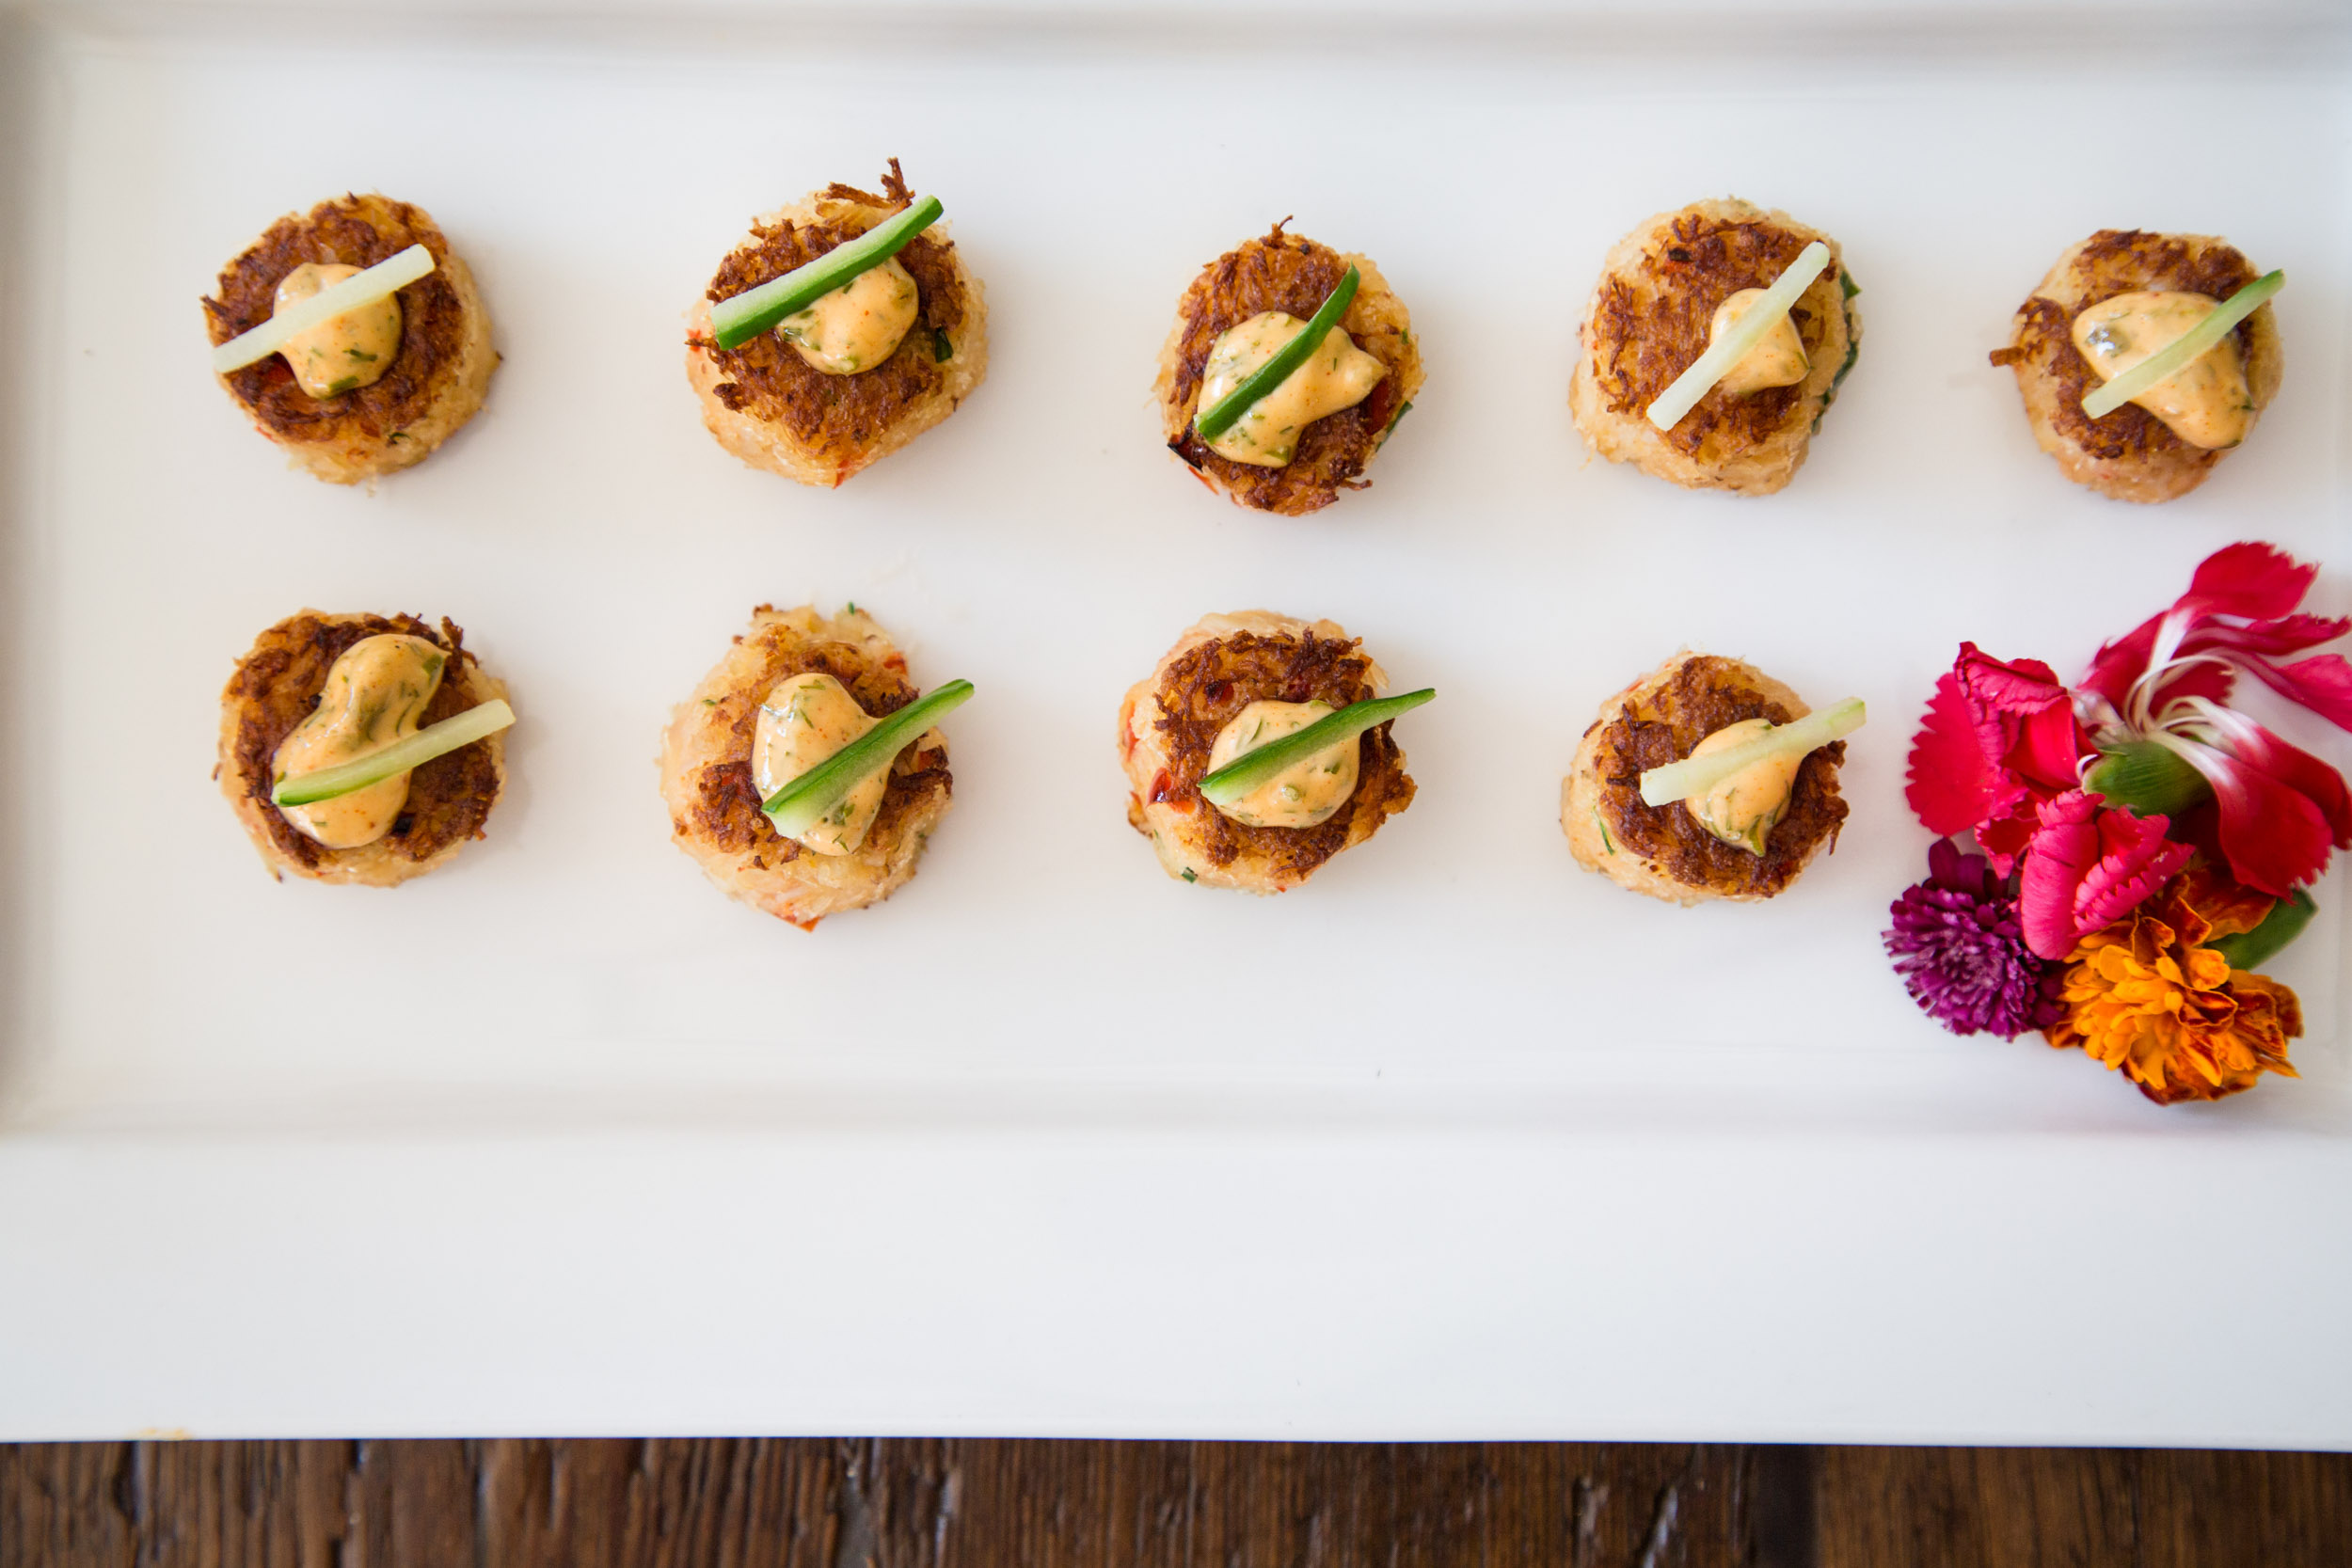 Crispy Crab Cake with Cucumber Batons and Remoulade